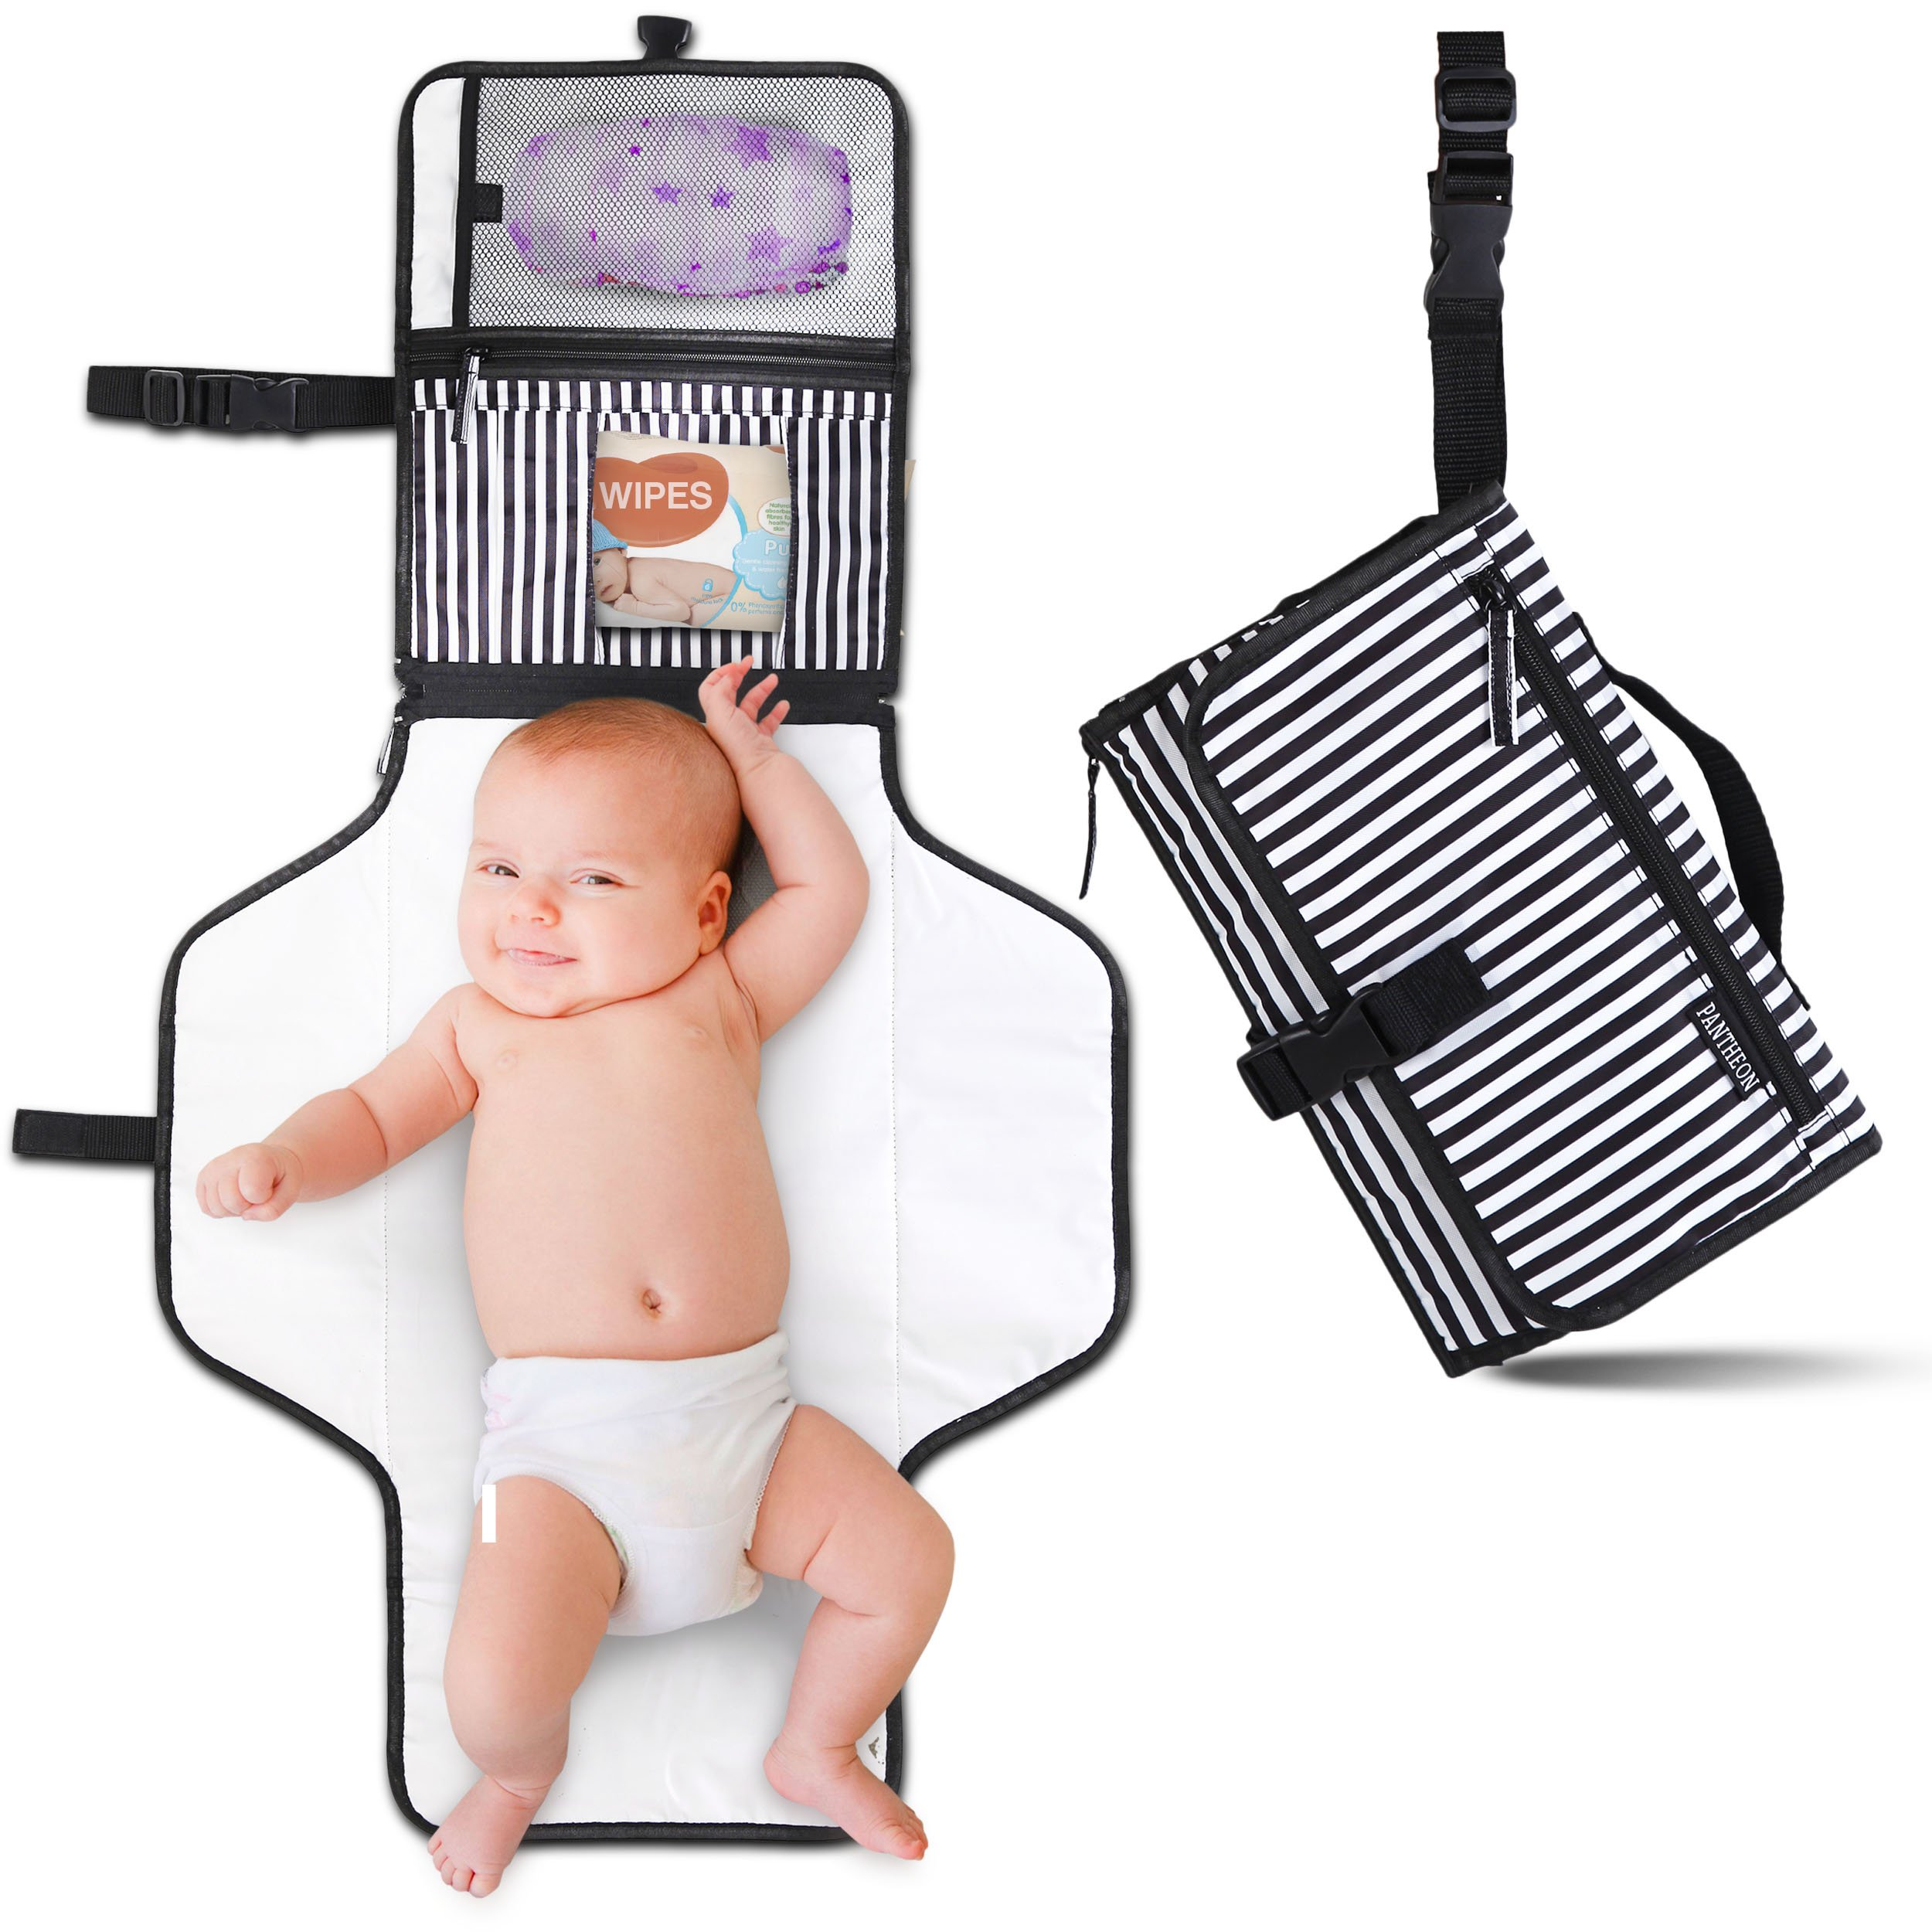 Portable Diaper Changing Pad Clutch, Travel Changer Station Kit for Baby and Infant with Extra Long Mat by Pantheon, Holds Diapers and Wipes (Black Breton Stripes) by Pantheon